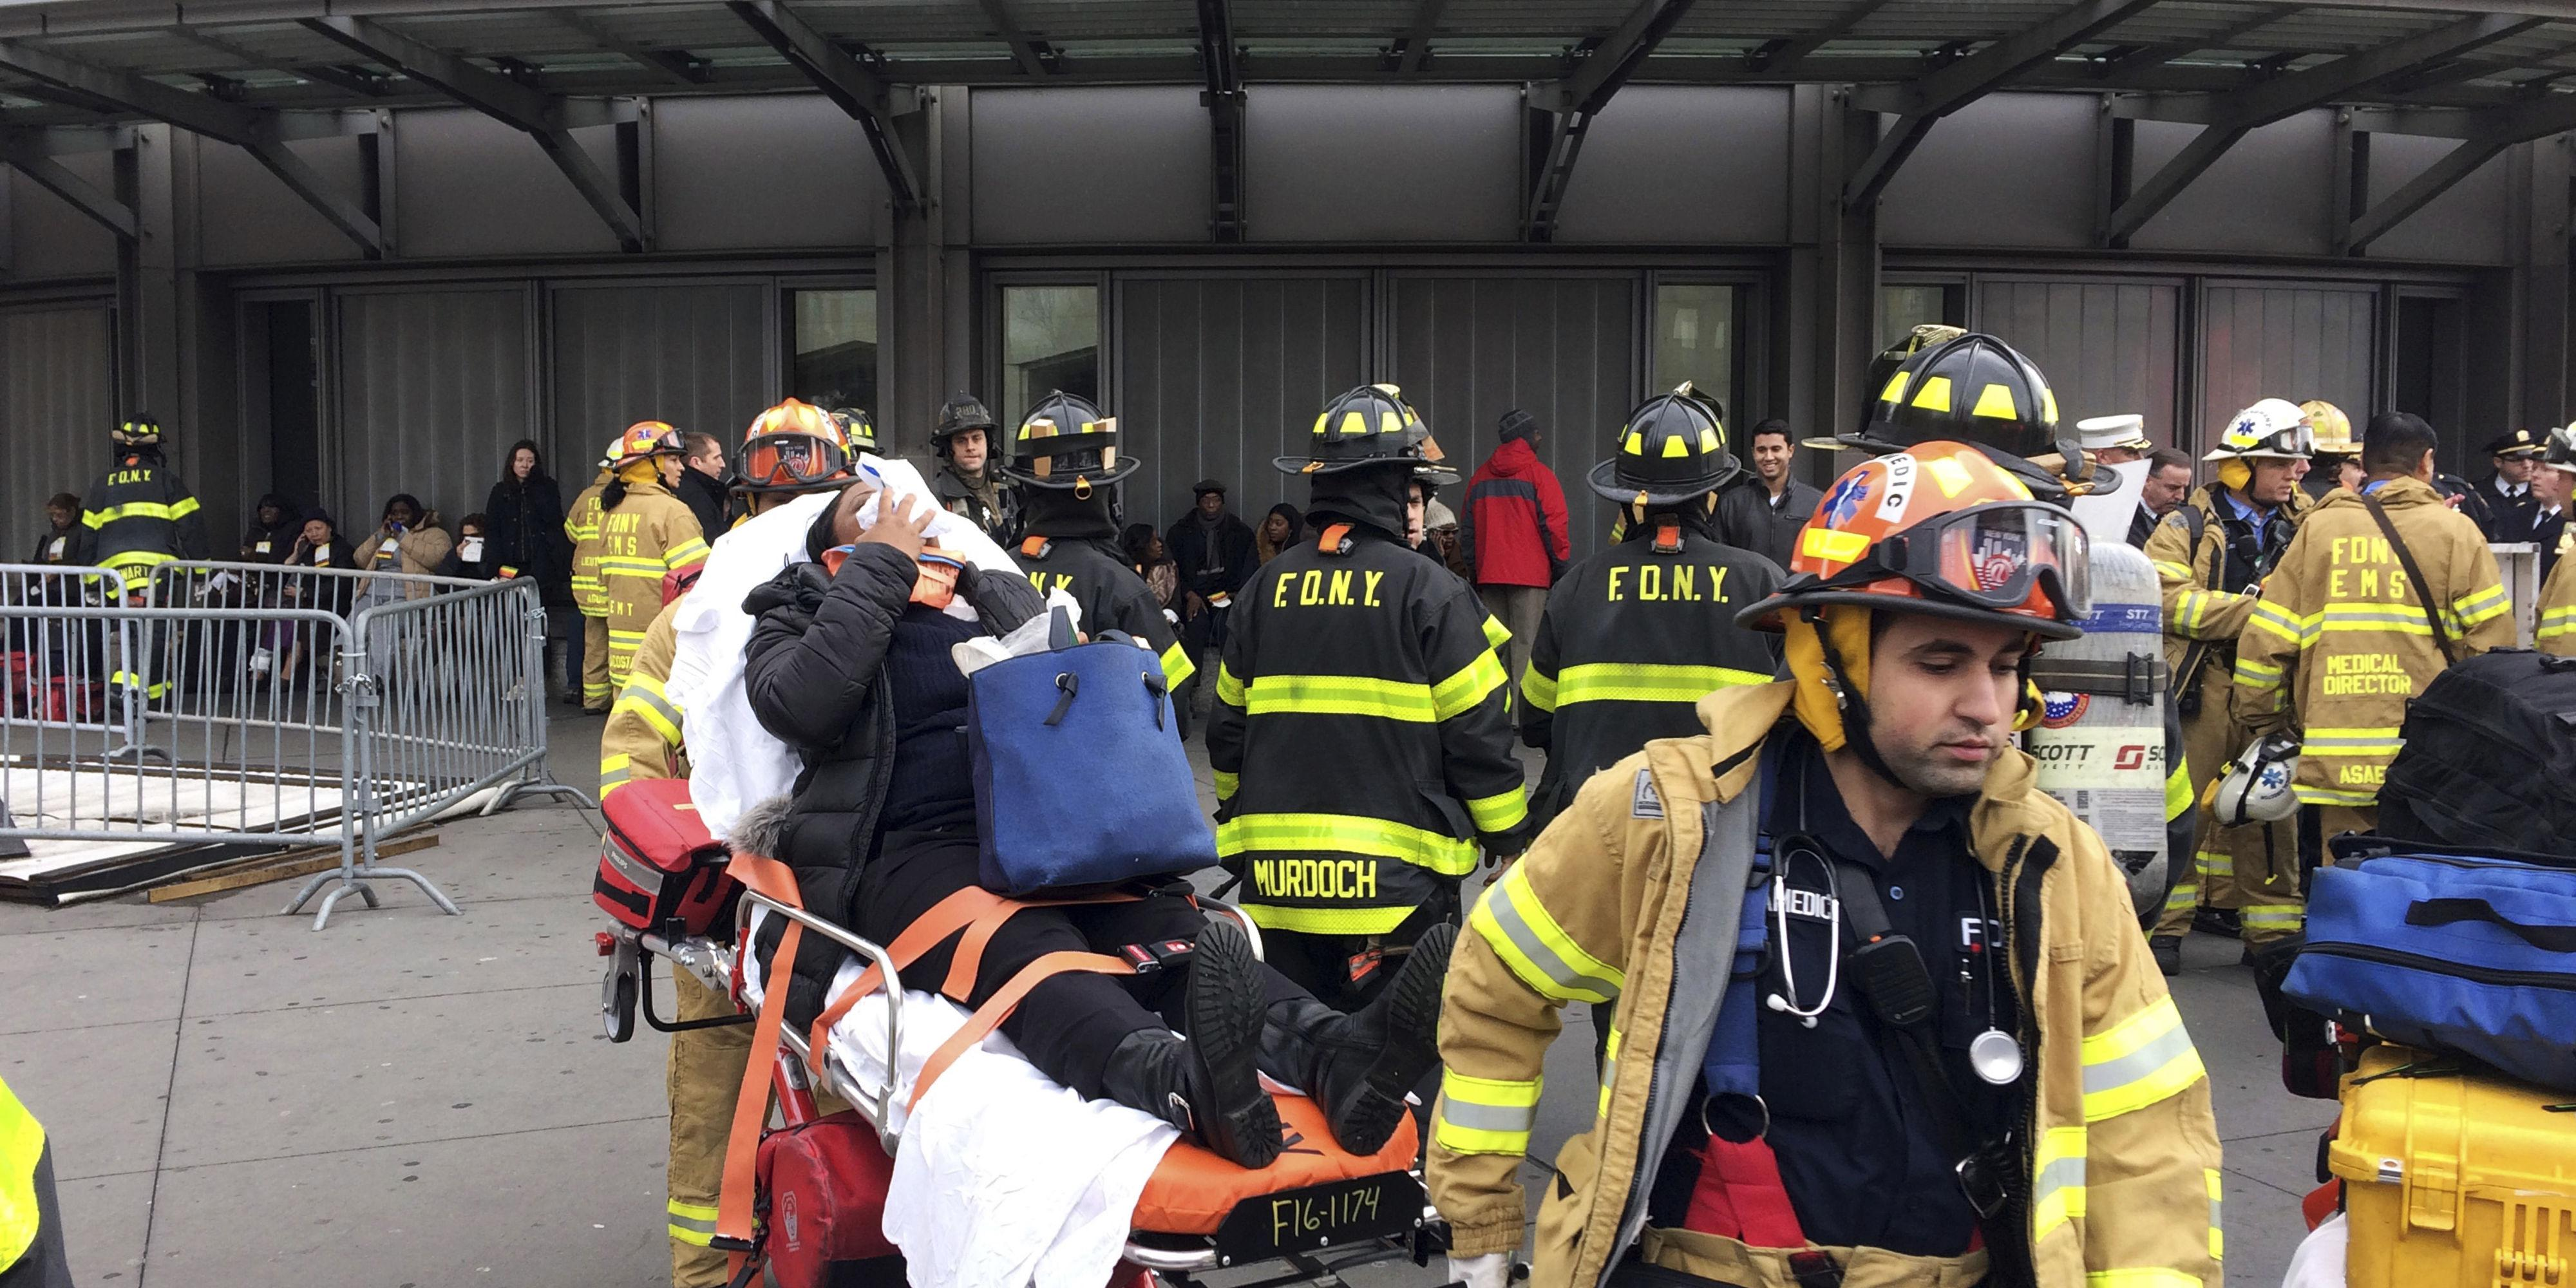 A New York City Train Derailed, Injuring Over 100 People